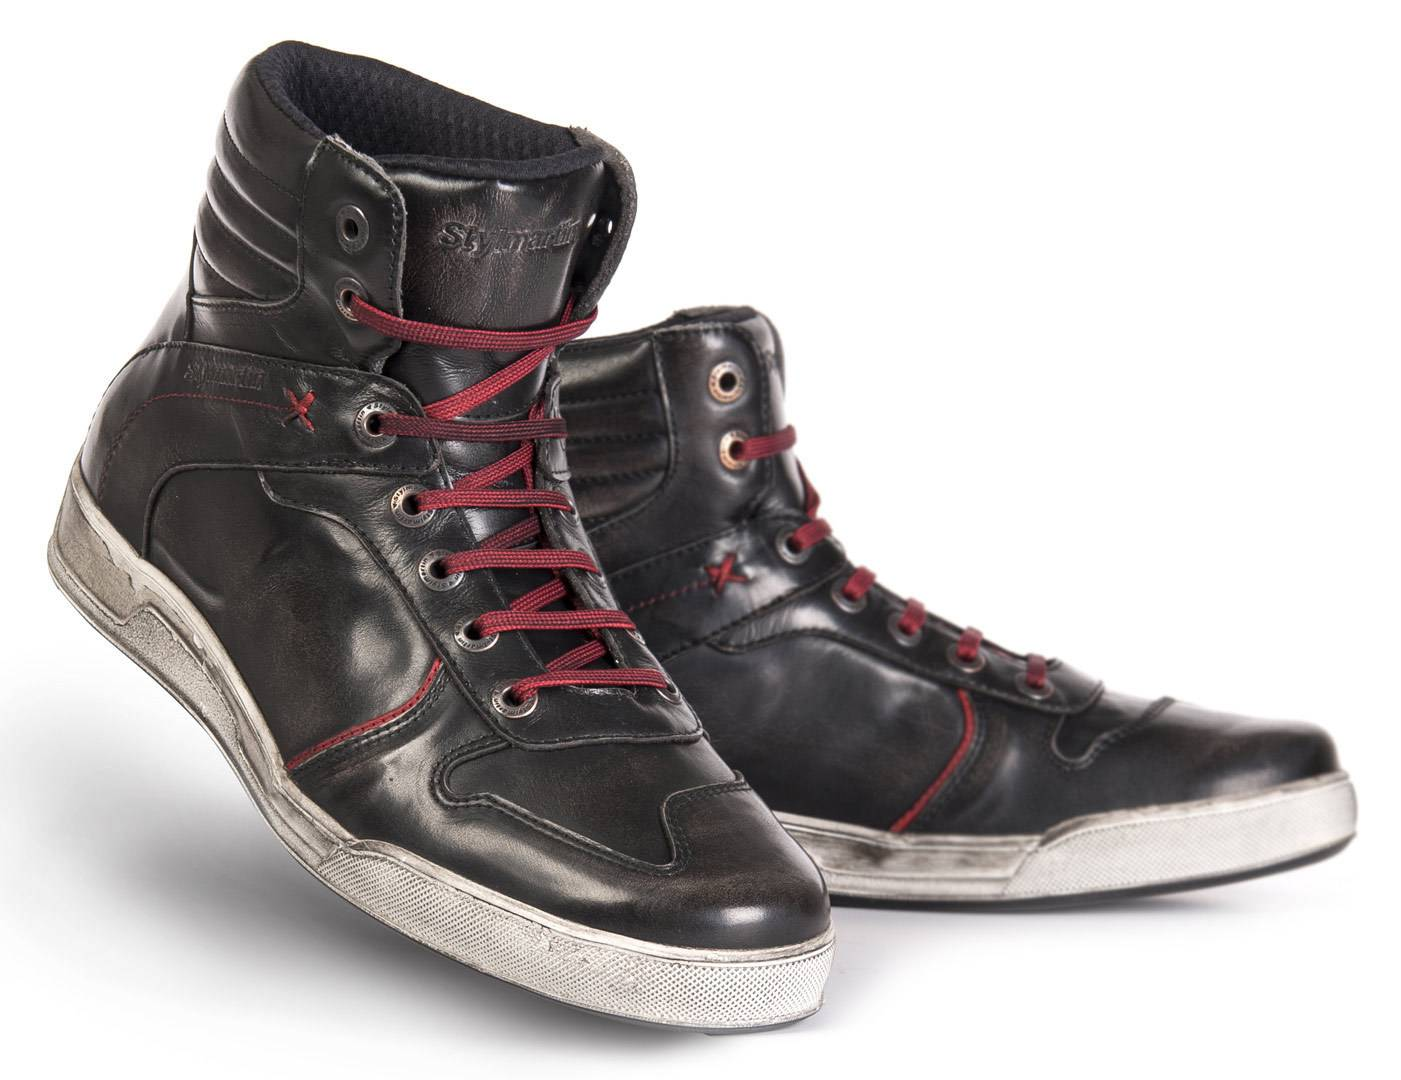 Stylmartin Iron Motorcycle Shoes Black Red 37